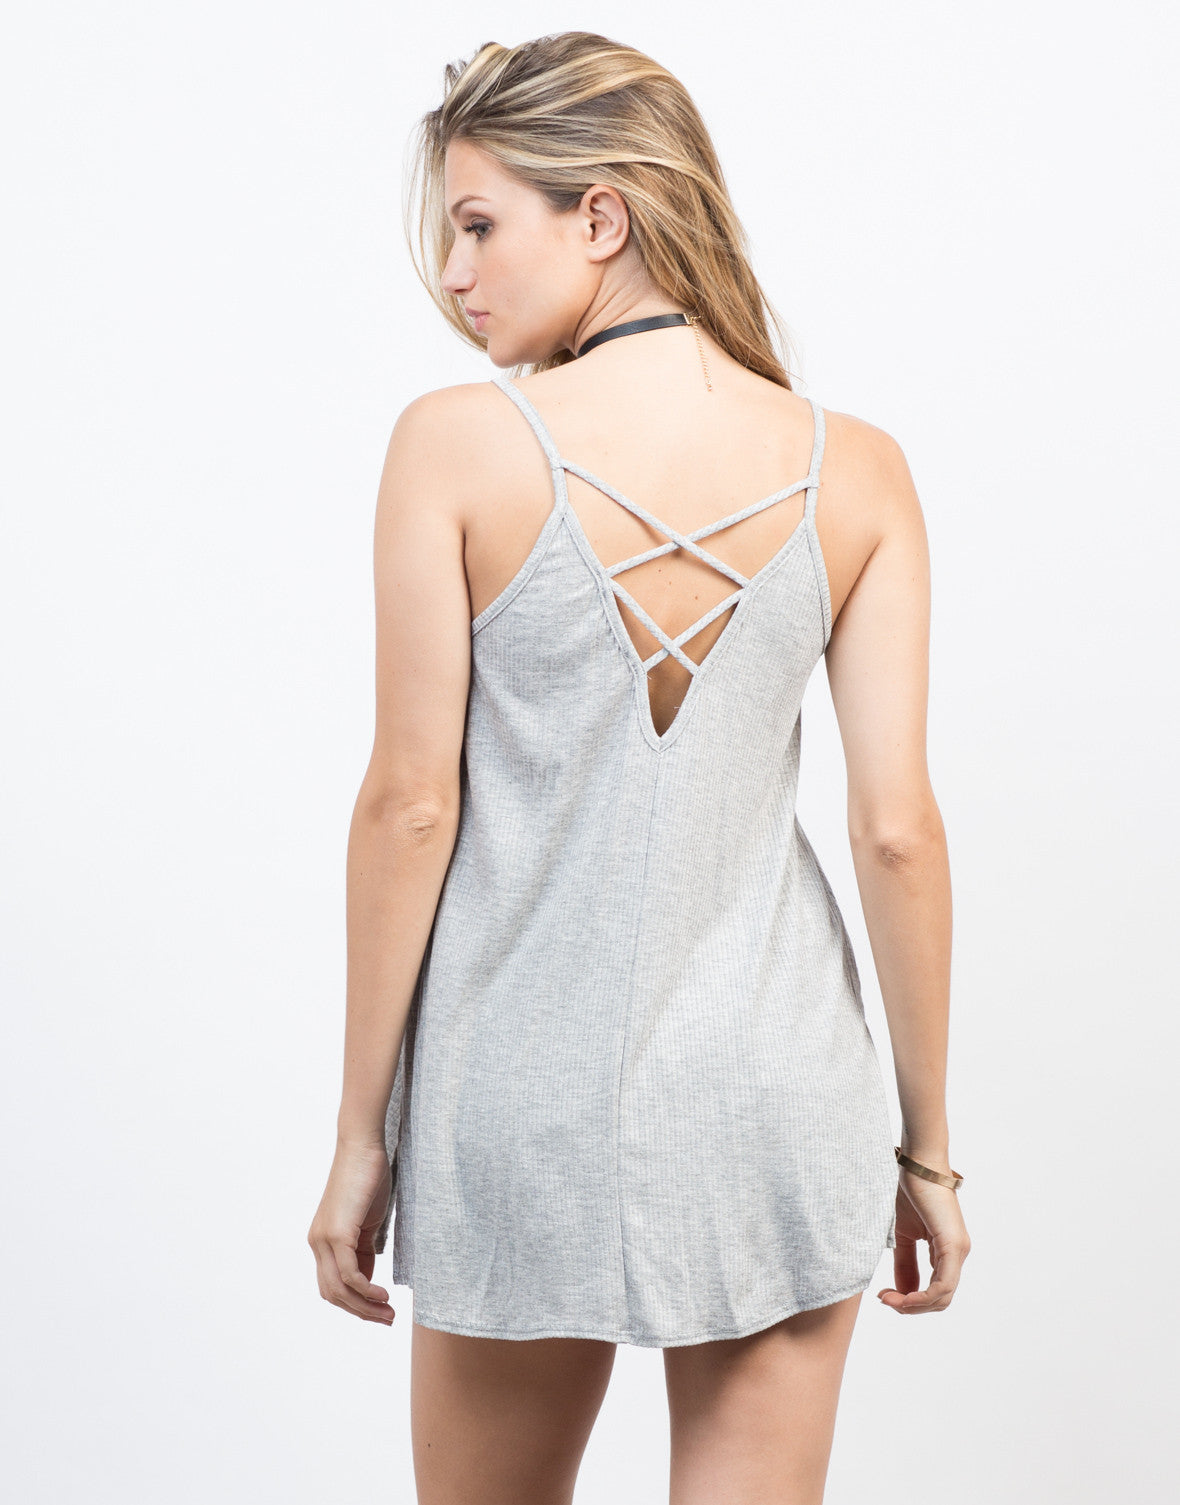 Back View of Do the Criss Cross Cami